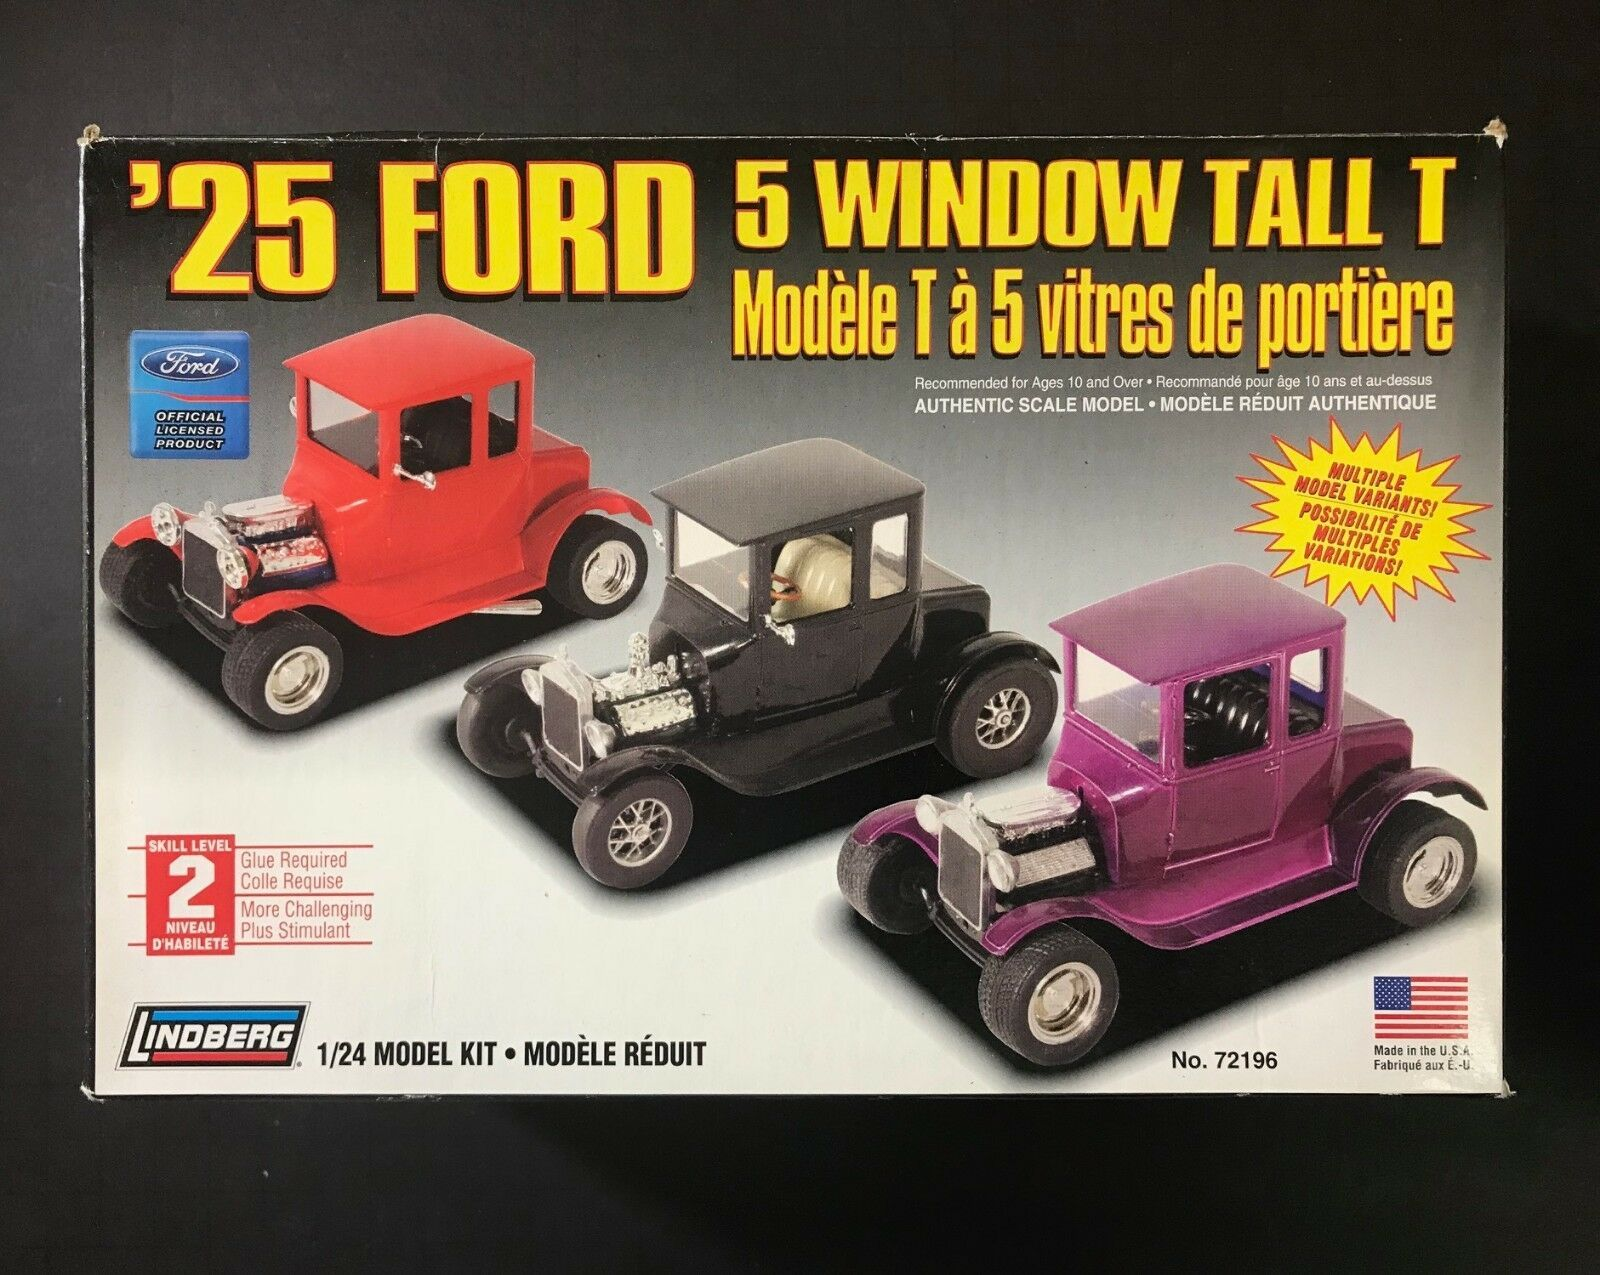 Lindberg '25 Ford 5 Window Tall T 1/24 Model Kit 72196 NEW IN BOX